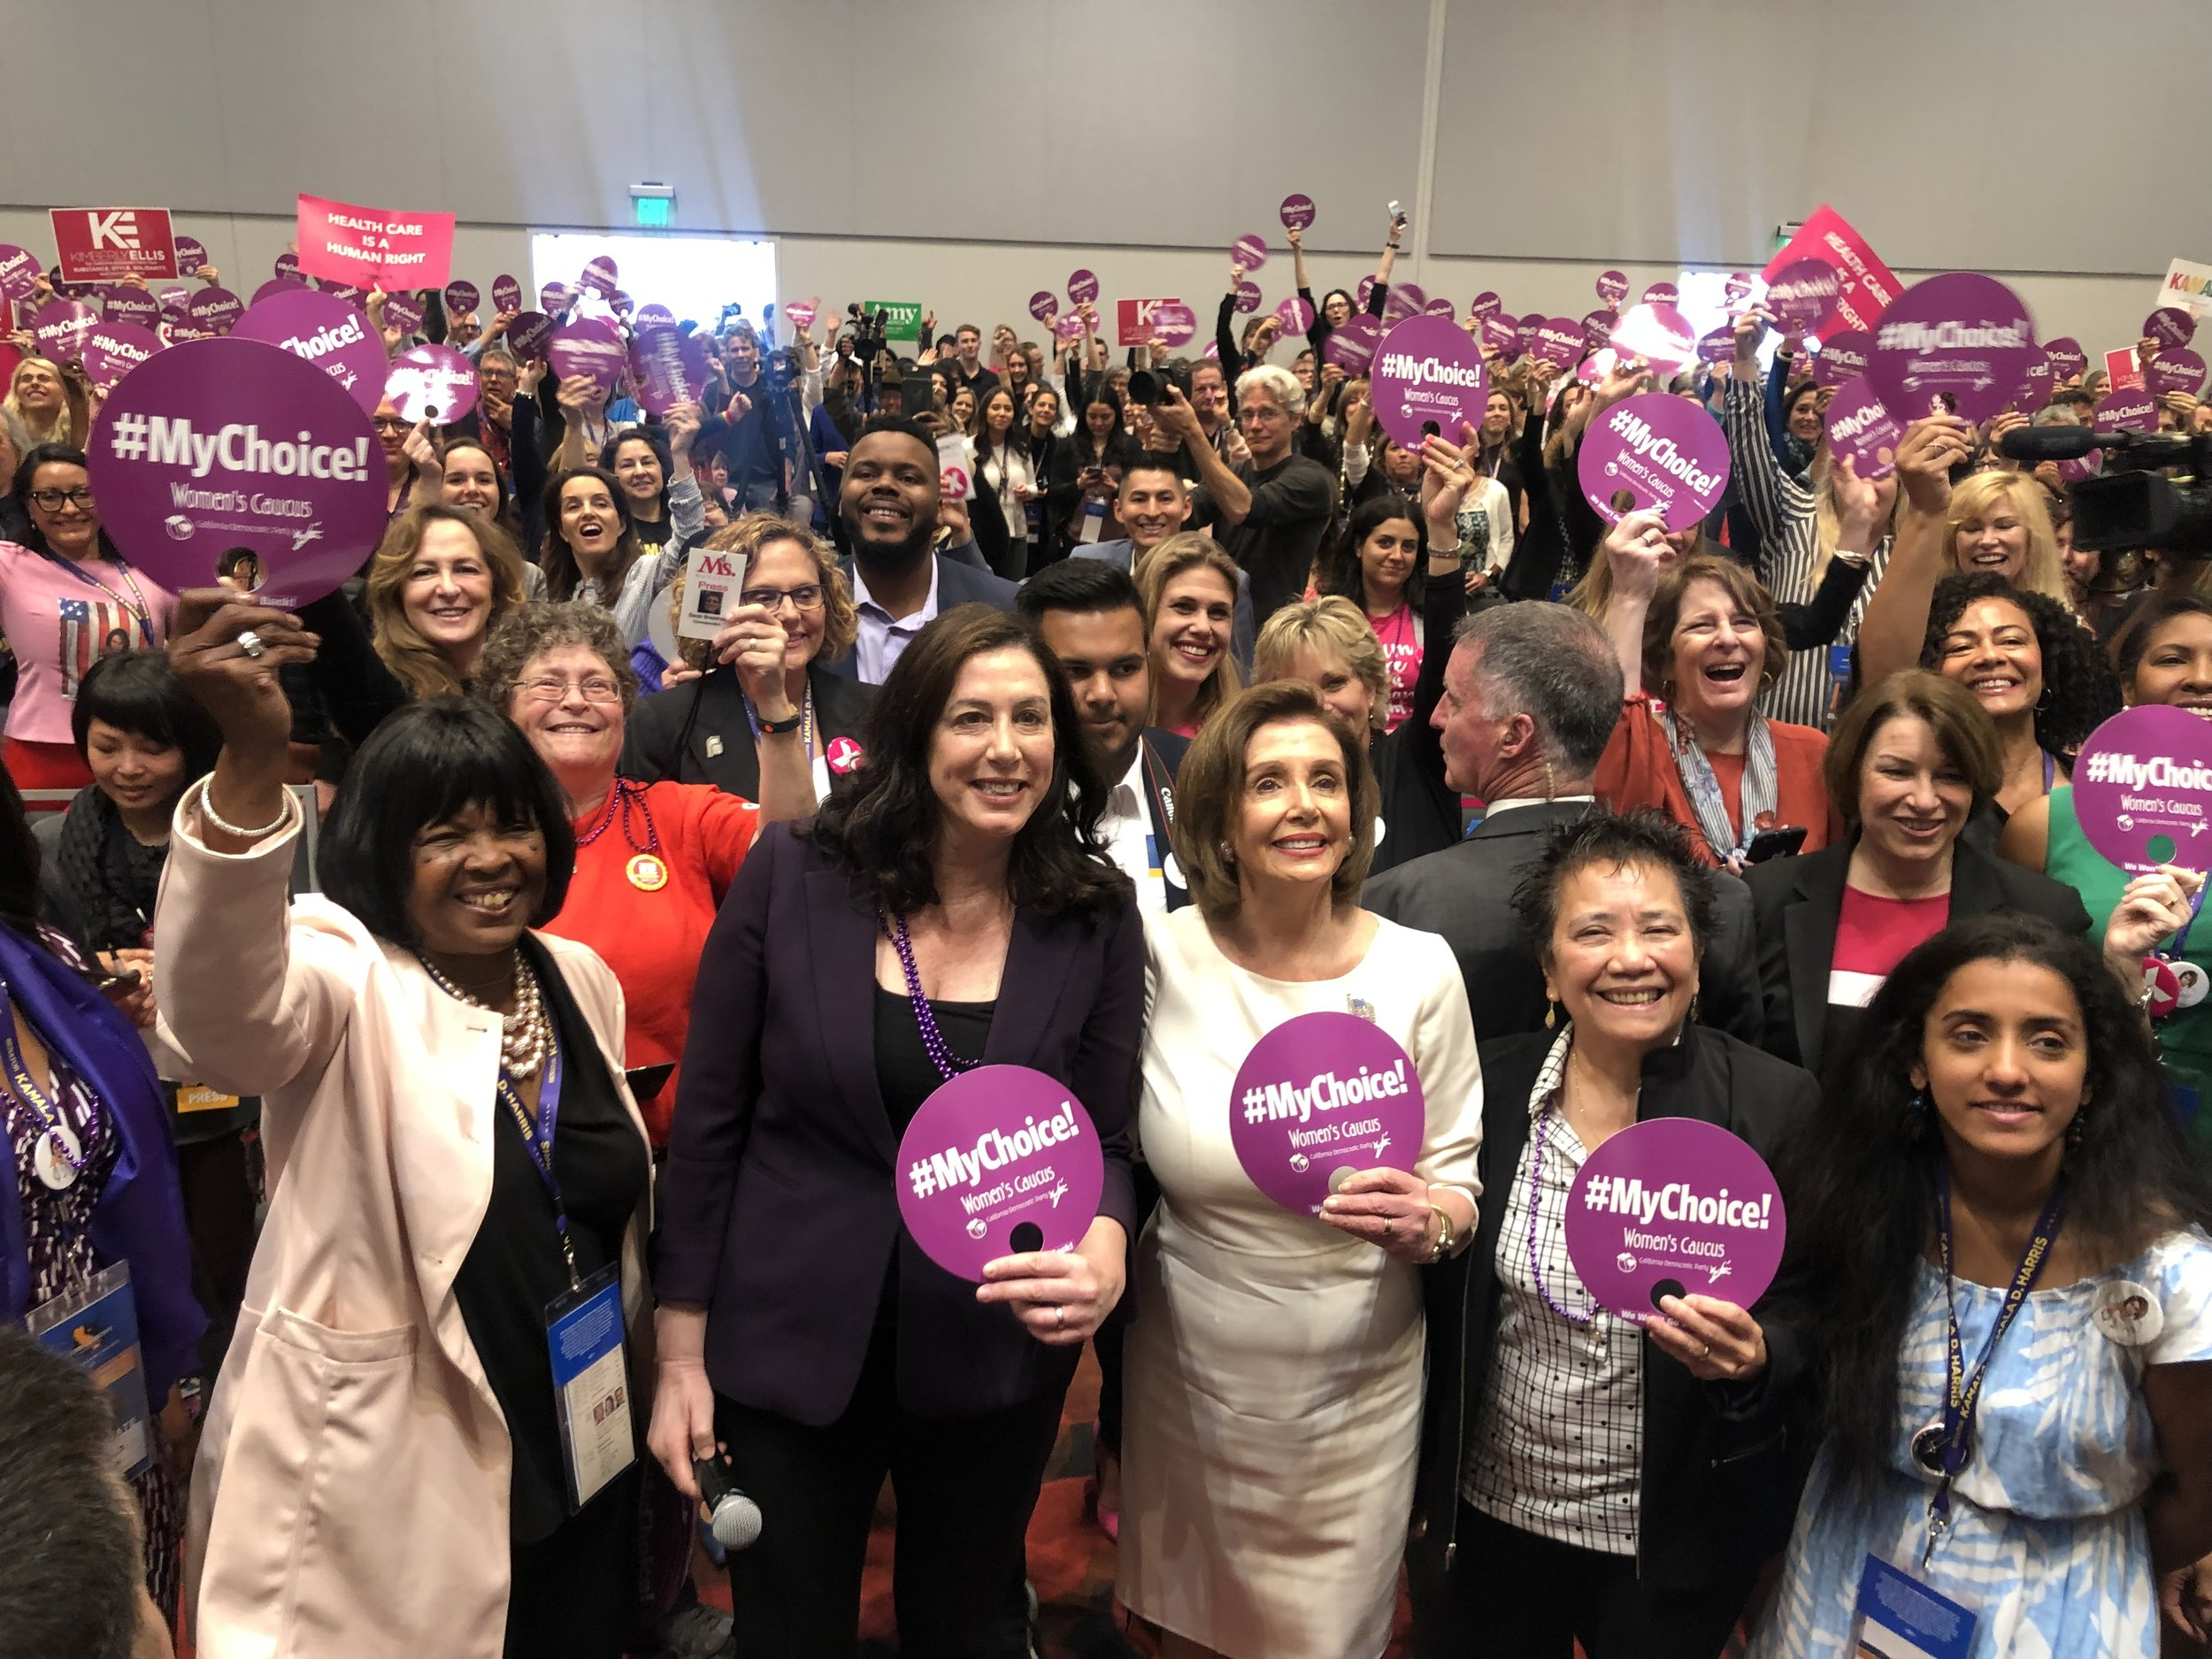 Christine Pelosi and House Speaker Nancy Pelosi surrounded by a crowd at the Women's Caucus event at the California Democratic Party convention, on June 1, 2019, in San Francisco. Photo by Tumay Aslay